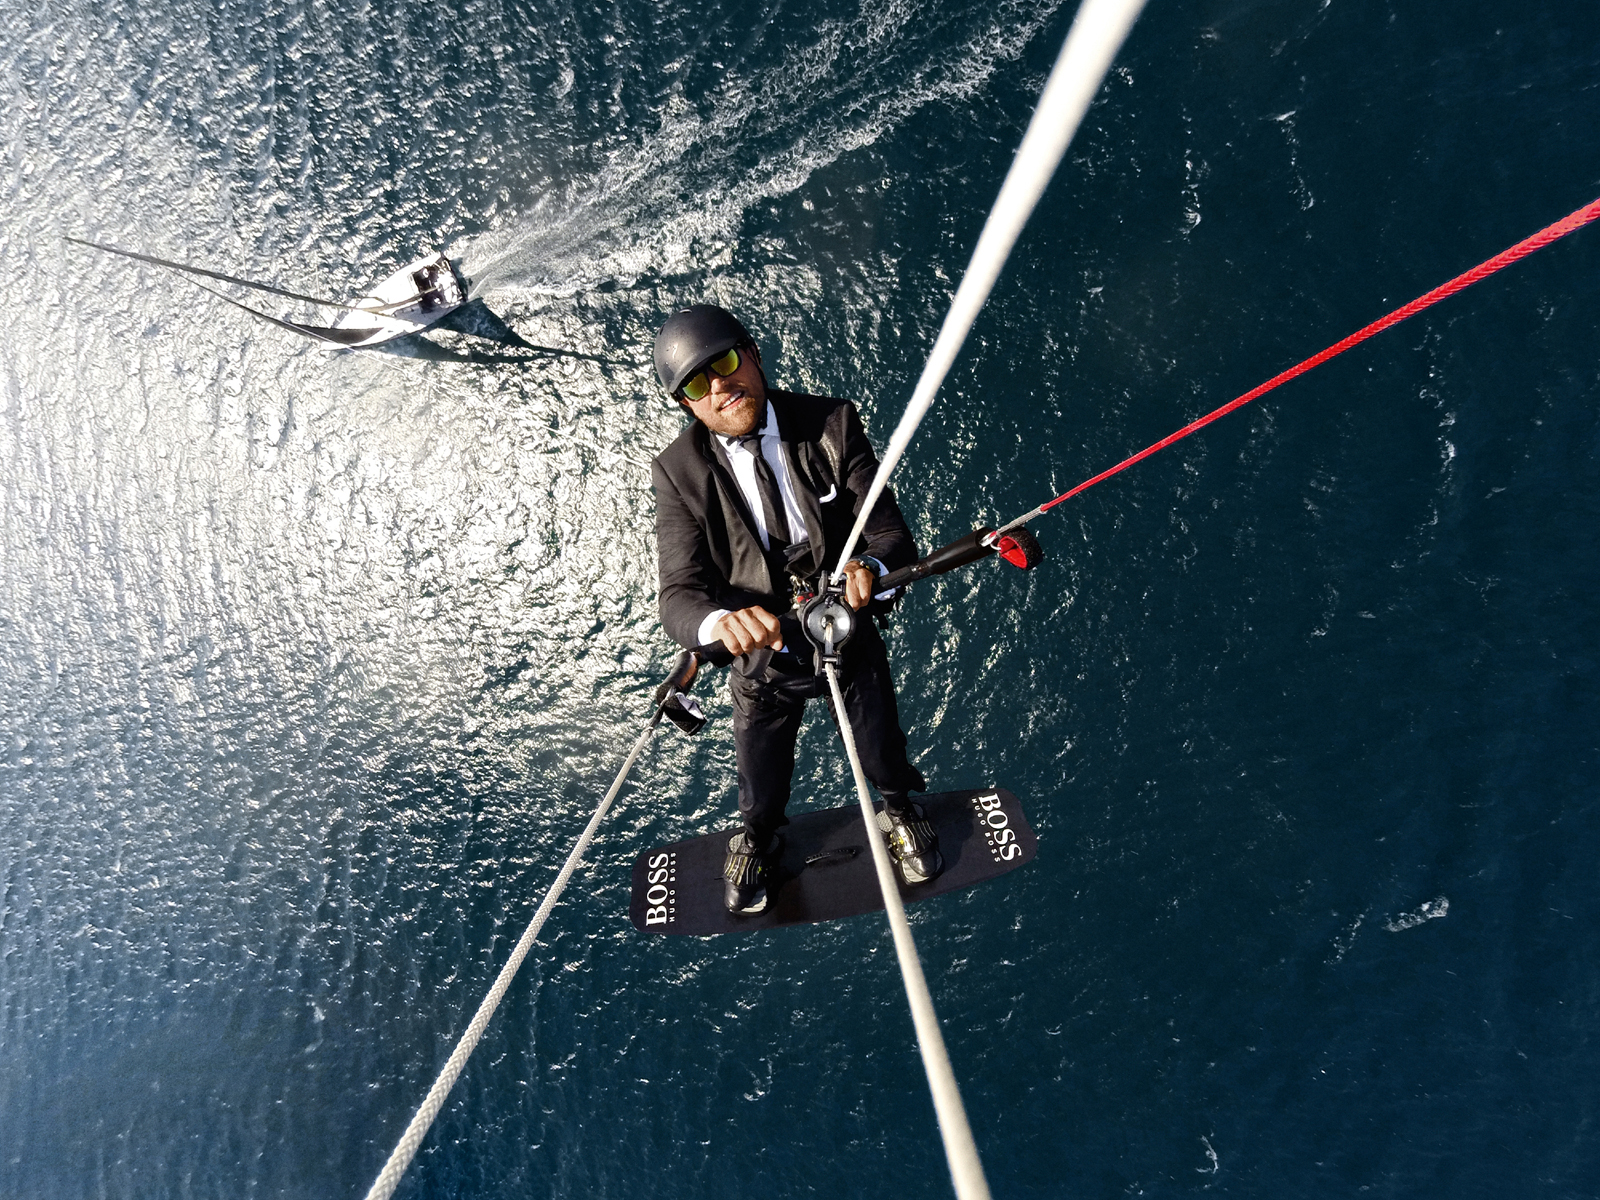 Alex Thomson Sky Walk 3 – picture credit = LLOYD IMAGES